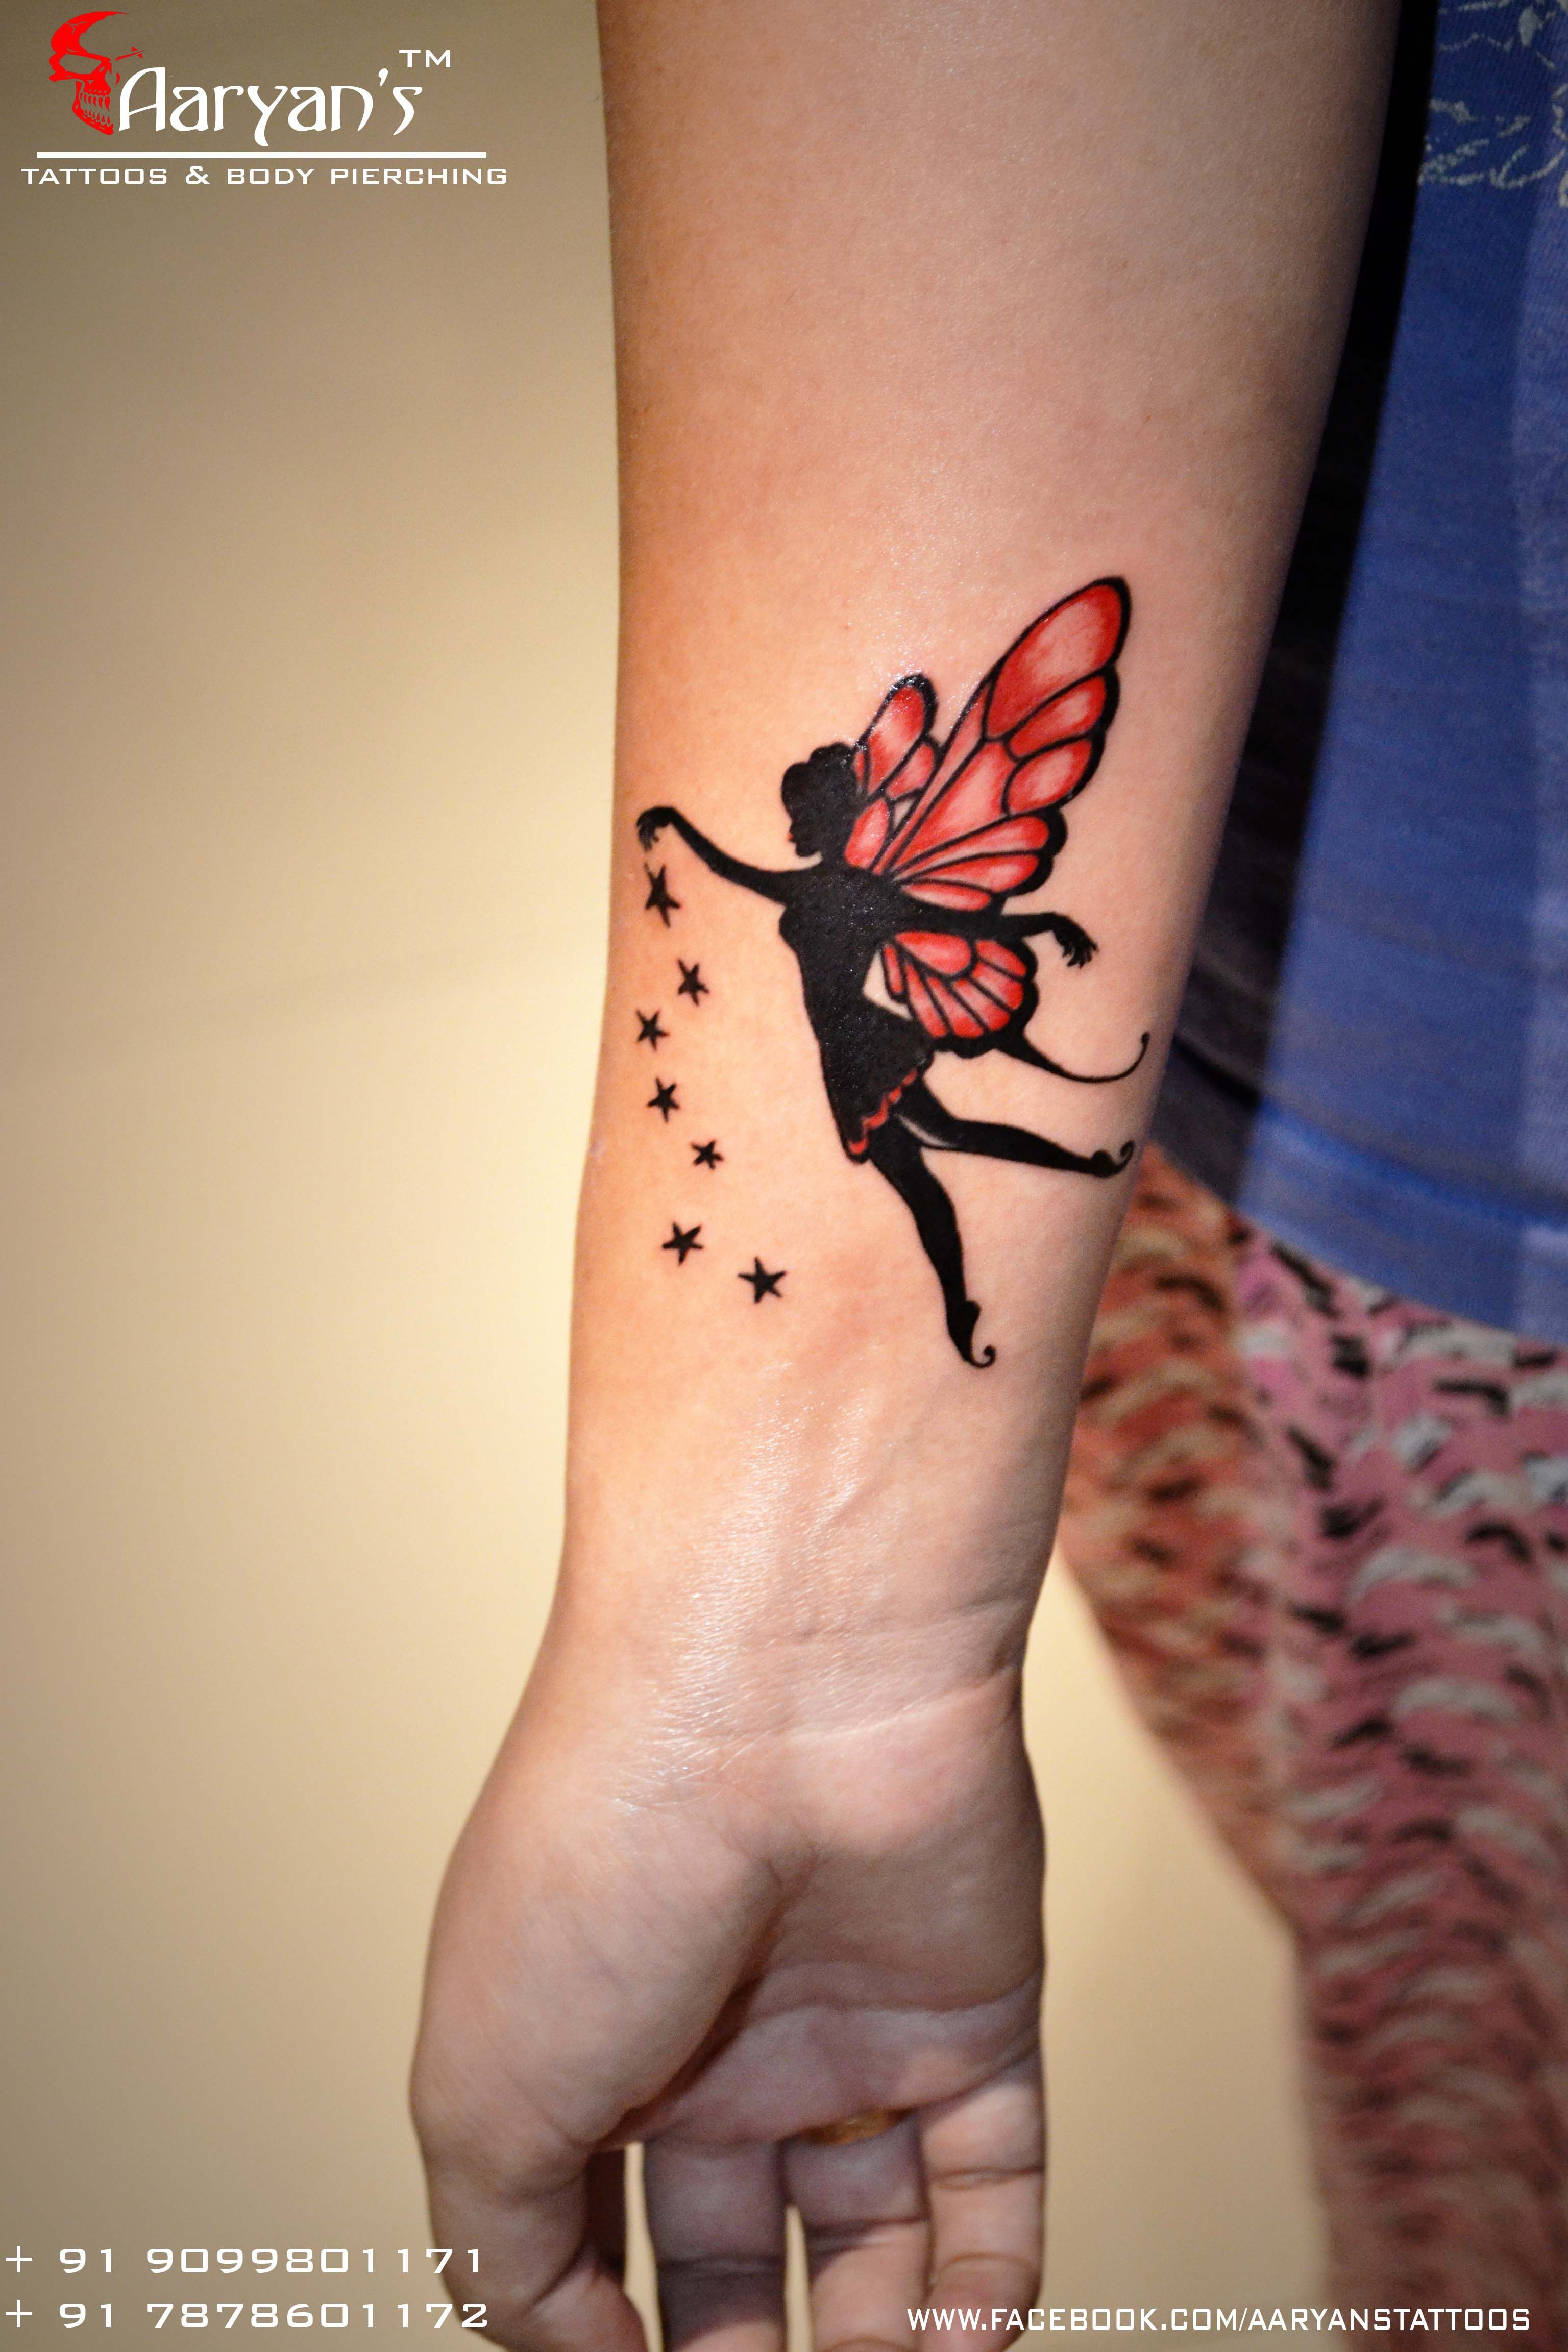 Fairy Customized Design With Star Flying In